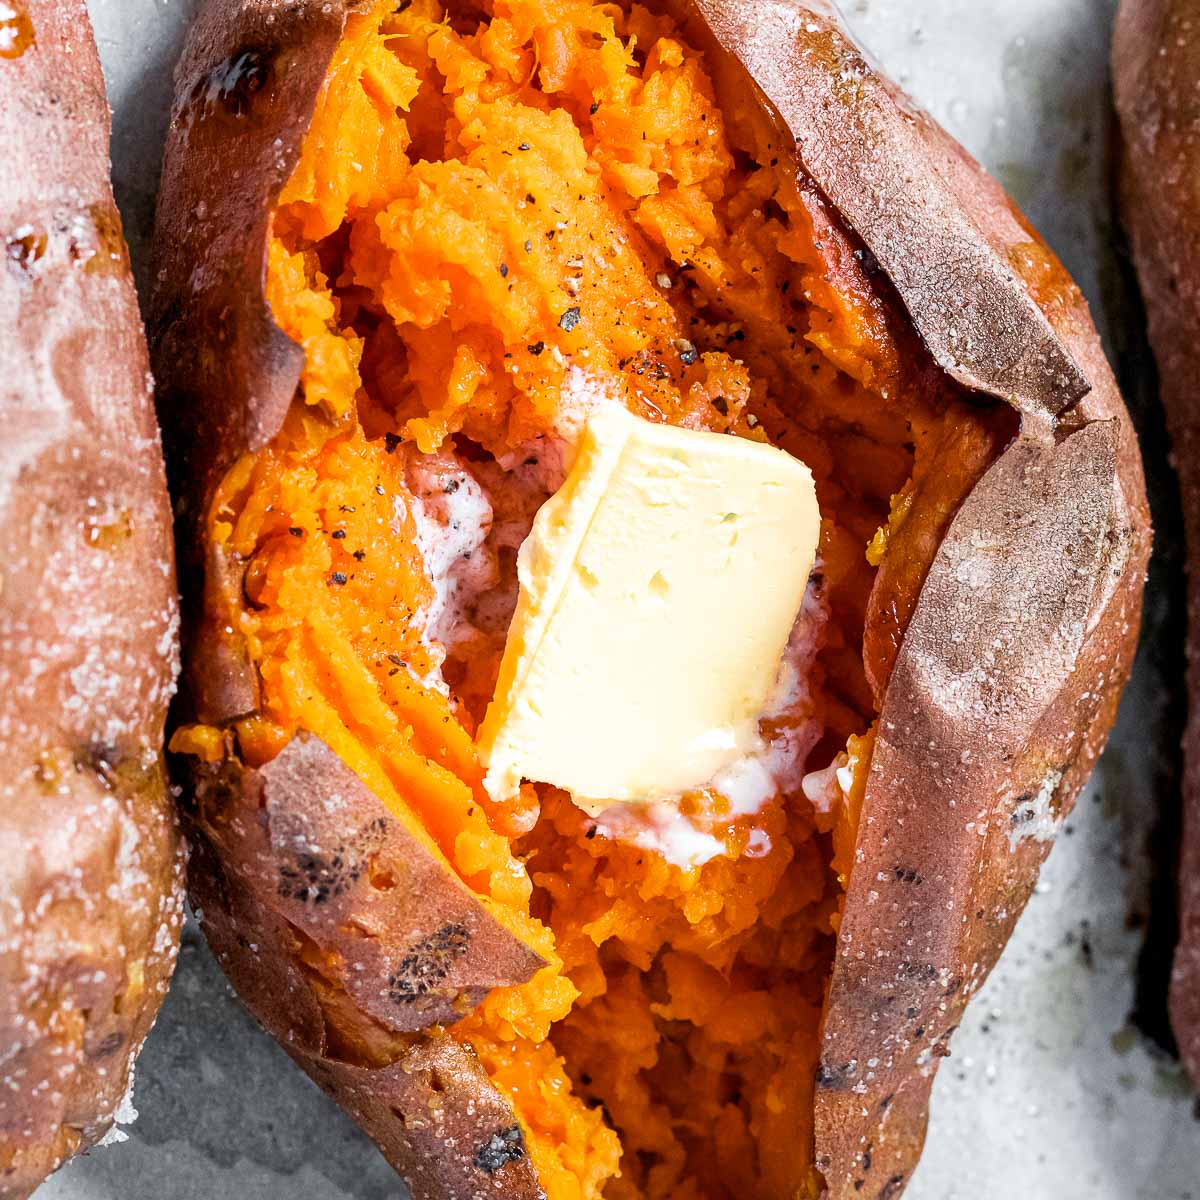 perfect baked sweet potato cut open to reveal fluffy inside with a pad of butter